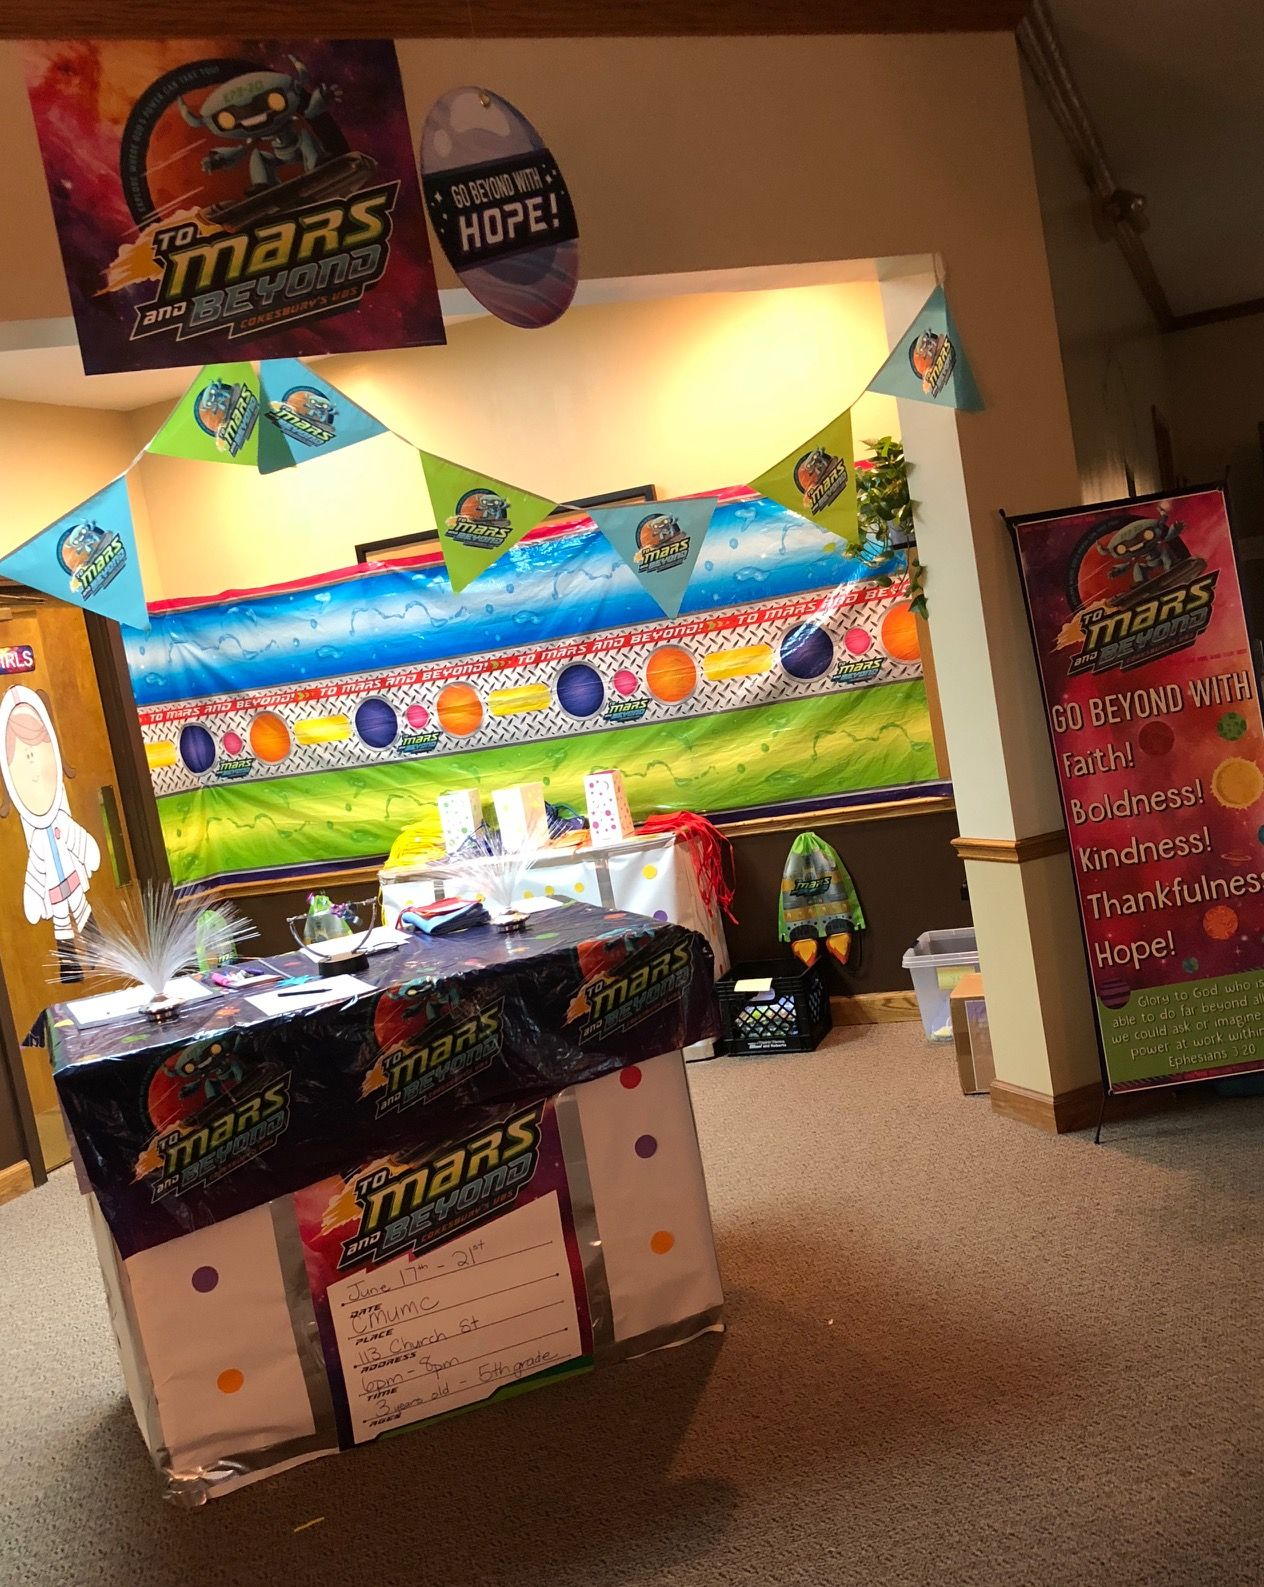 WOW your to Mars VBS! Just look at all the ways